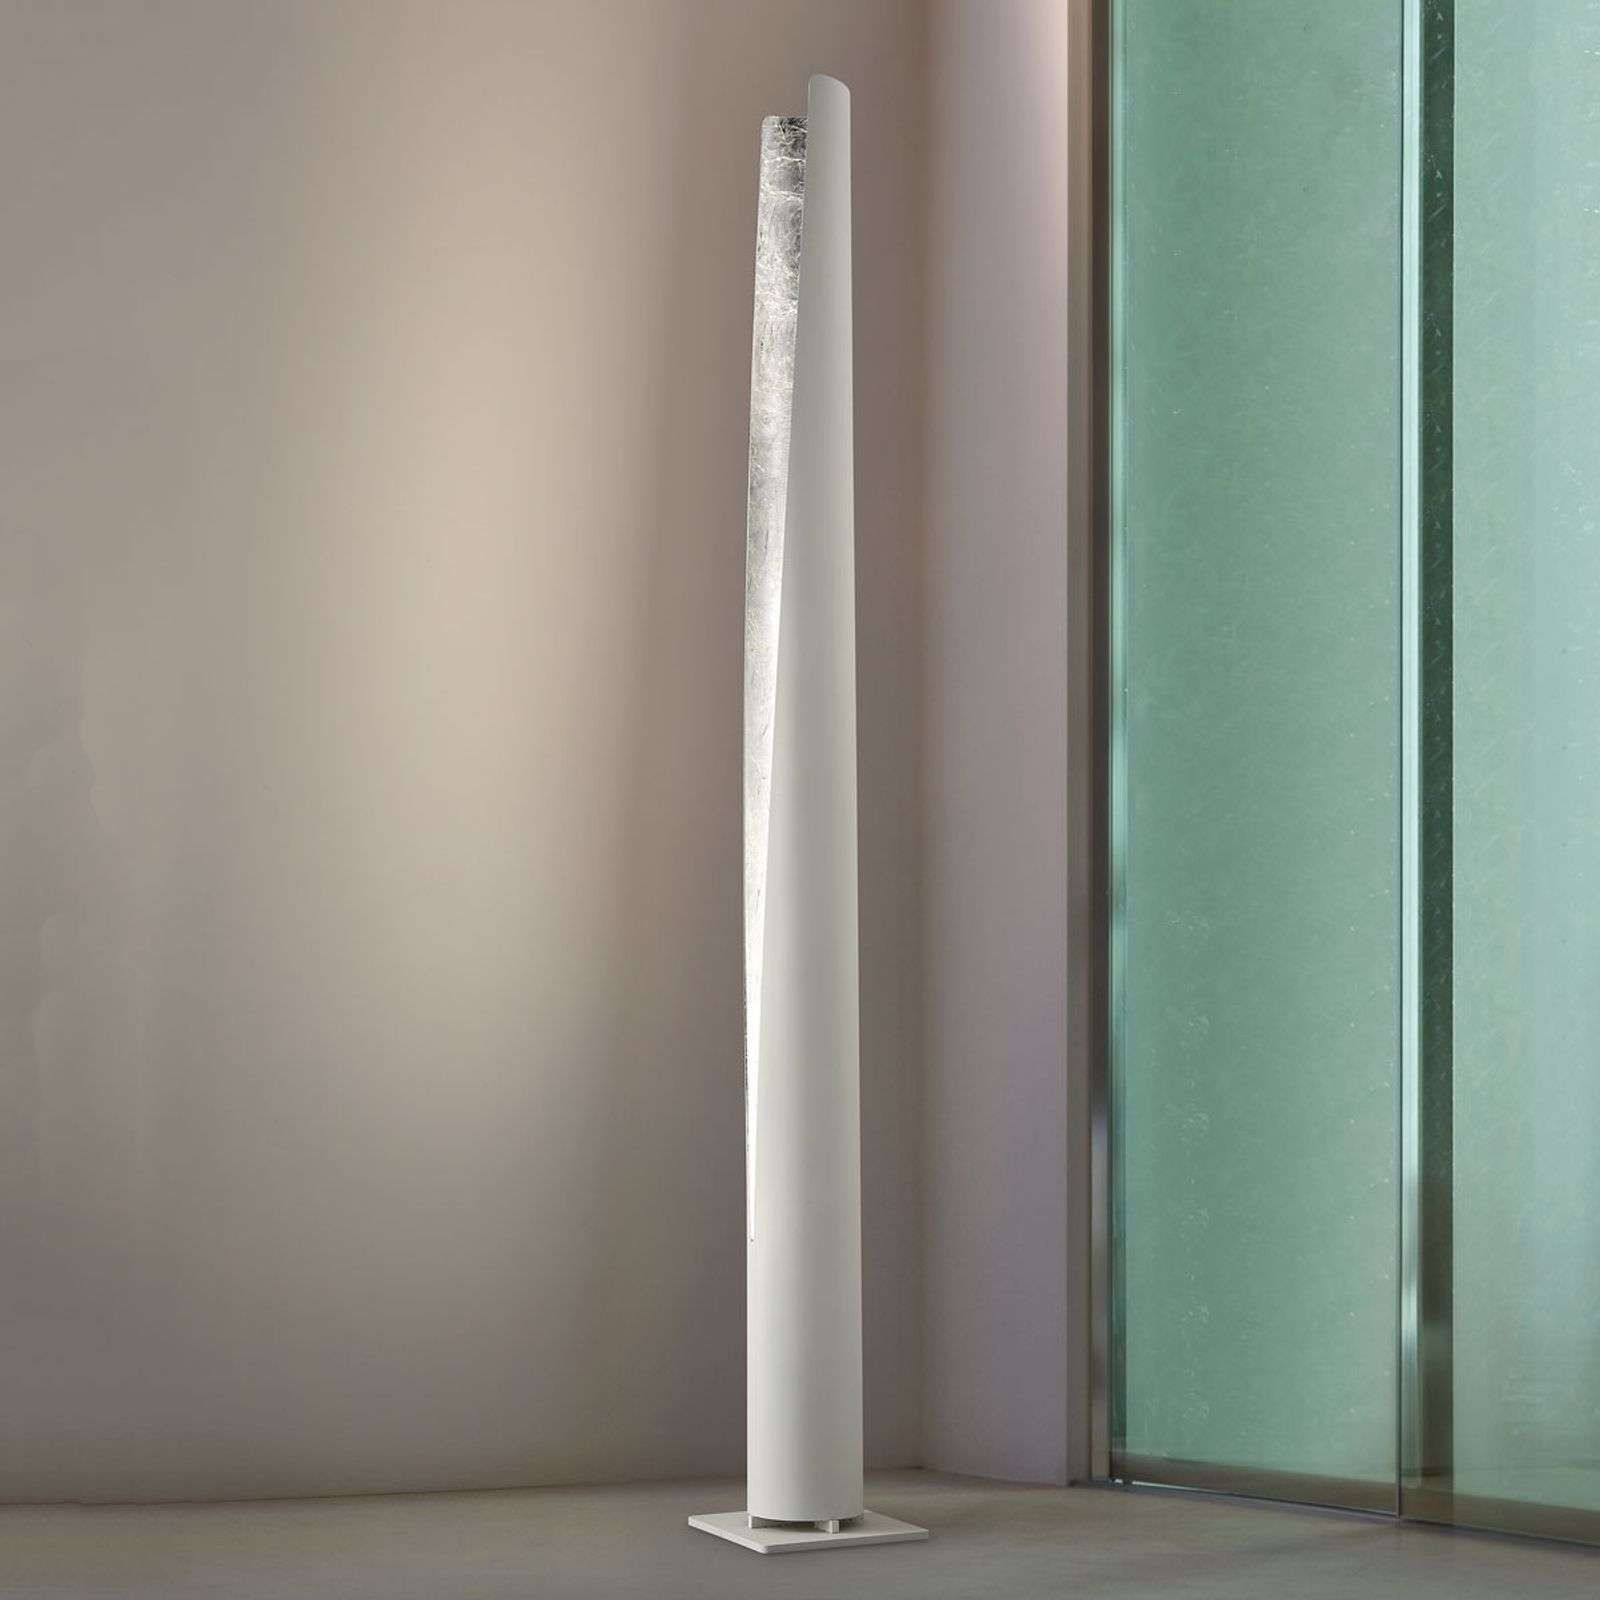 Lampadaire Exclusif Cannula In 2020 Vloerlamp Lampenvoet Wit